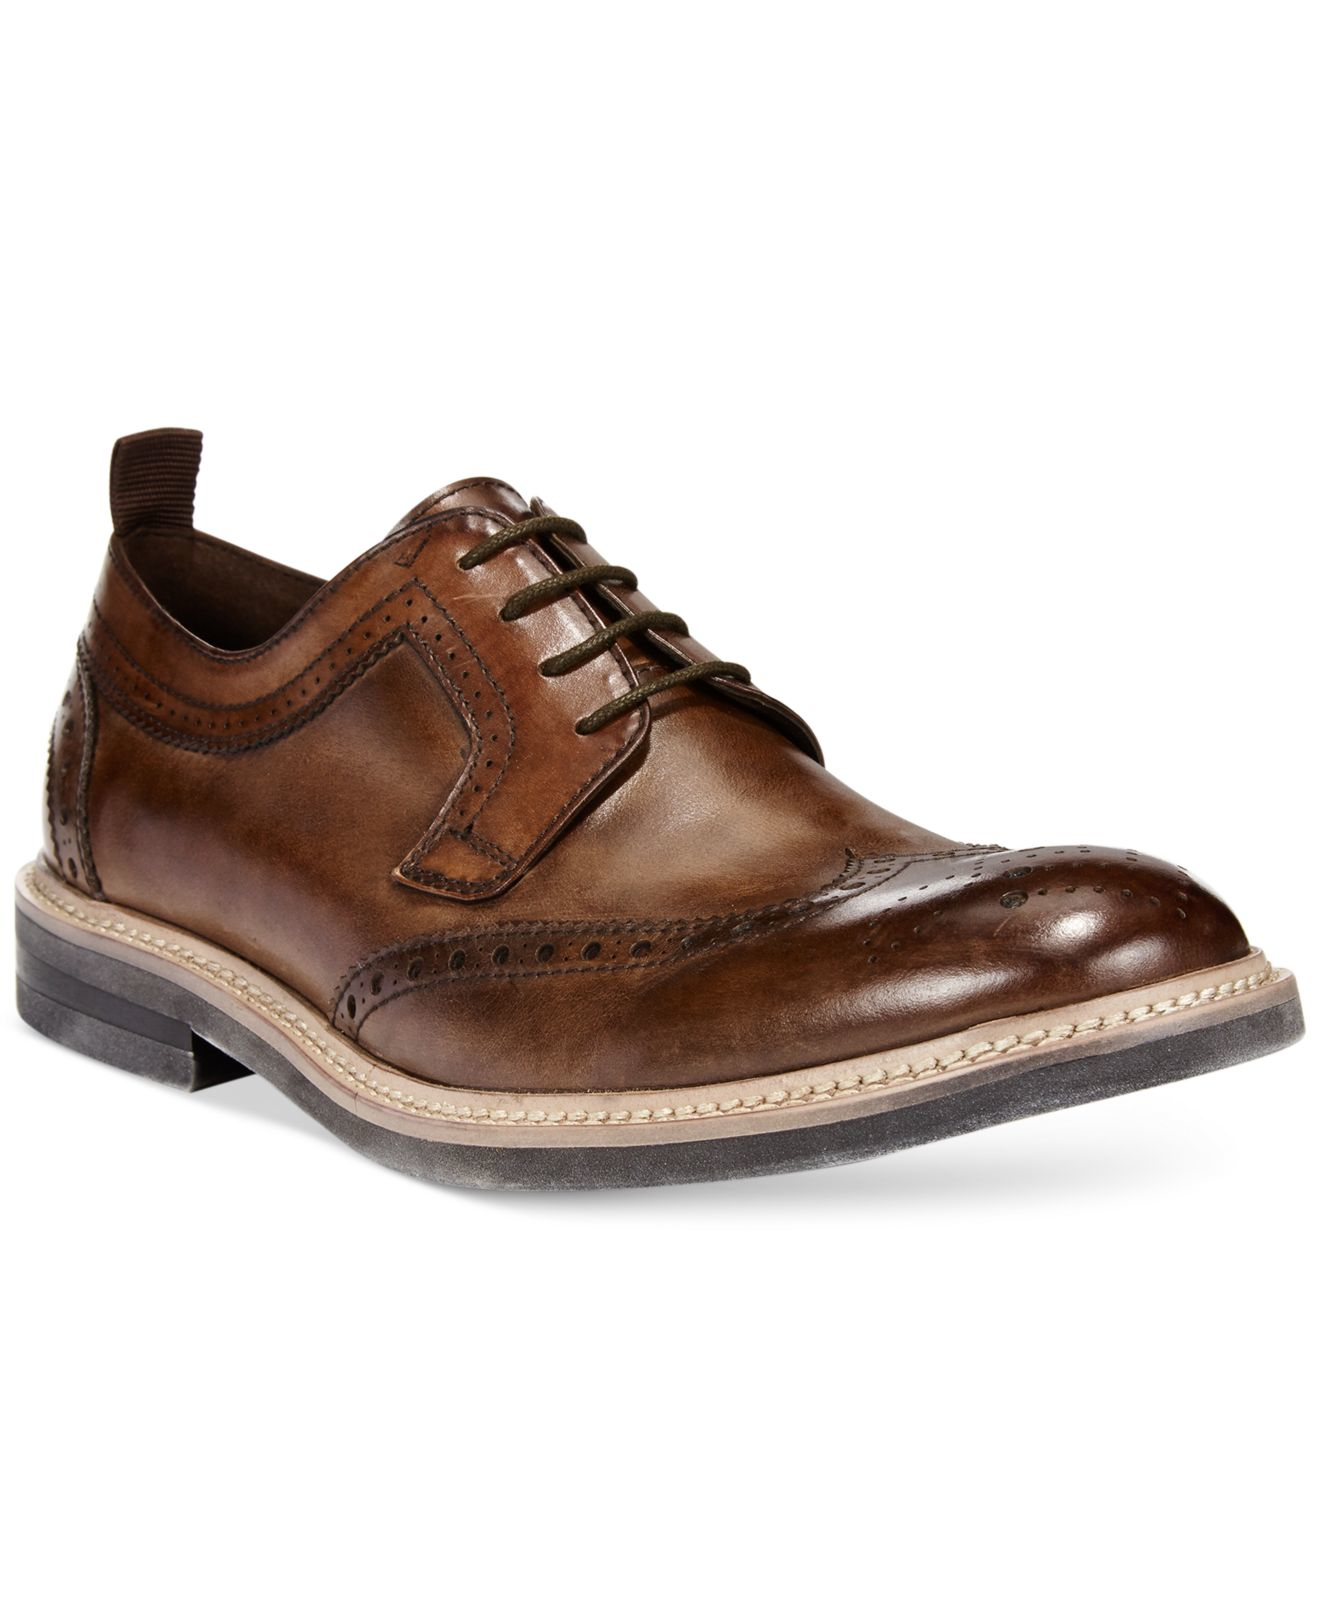 Kenneth Cole Leather Sole Shoes